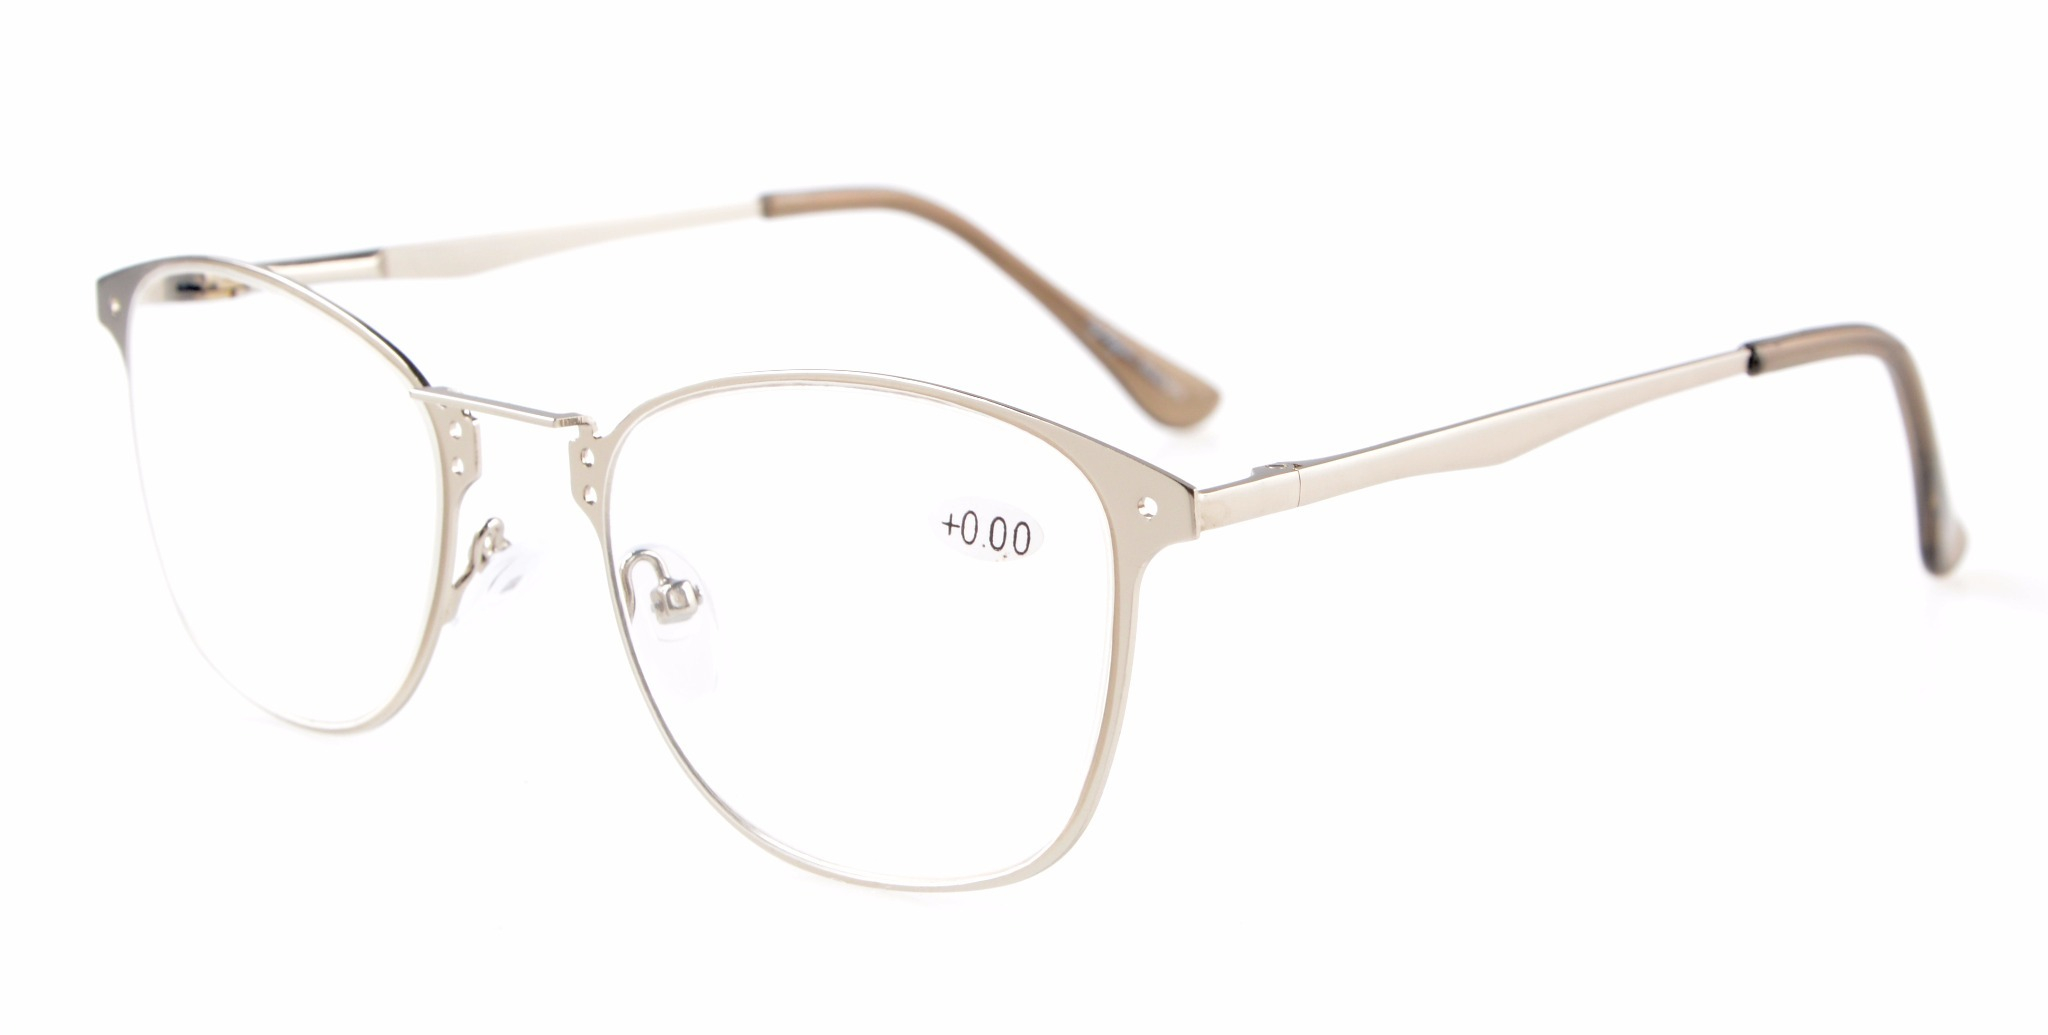 Eyekepper Readers Quality Spring-hinge Retro Eyeglasses R15039-Silver-0.0